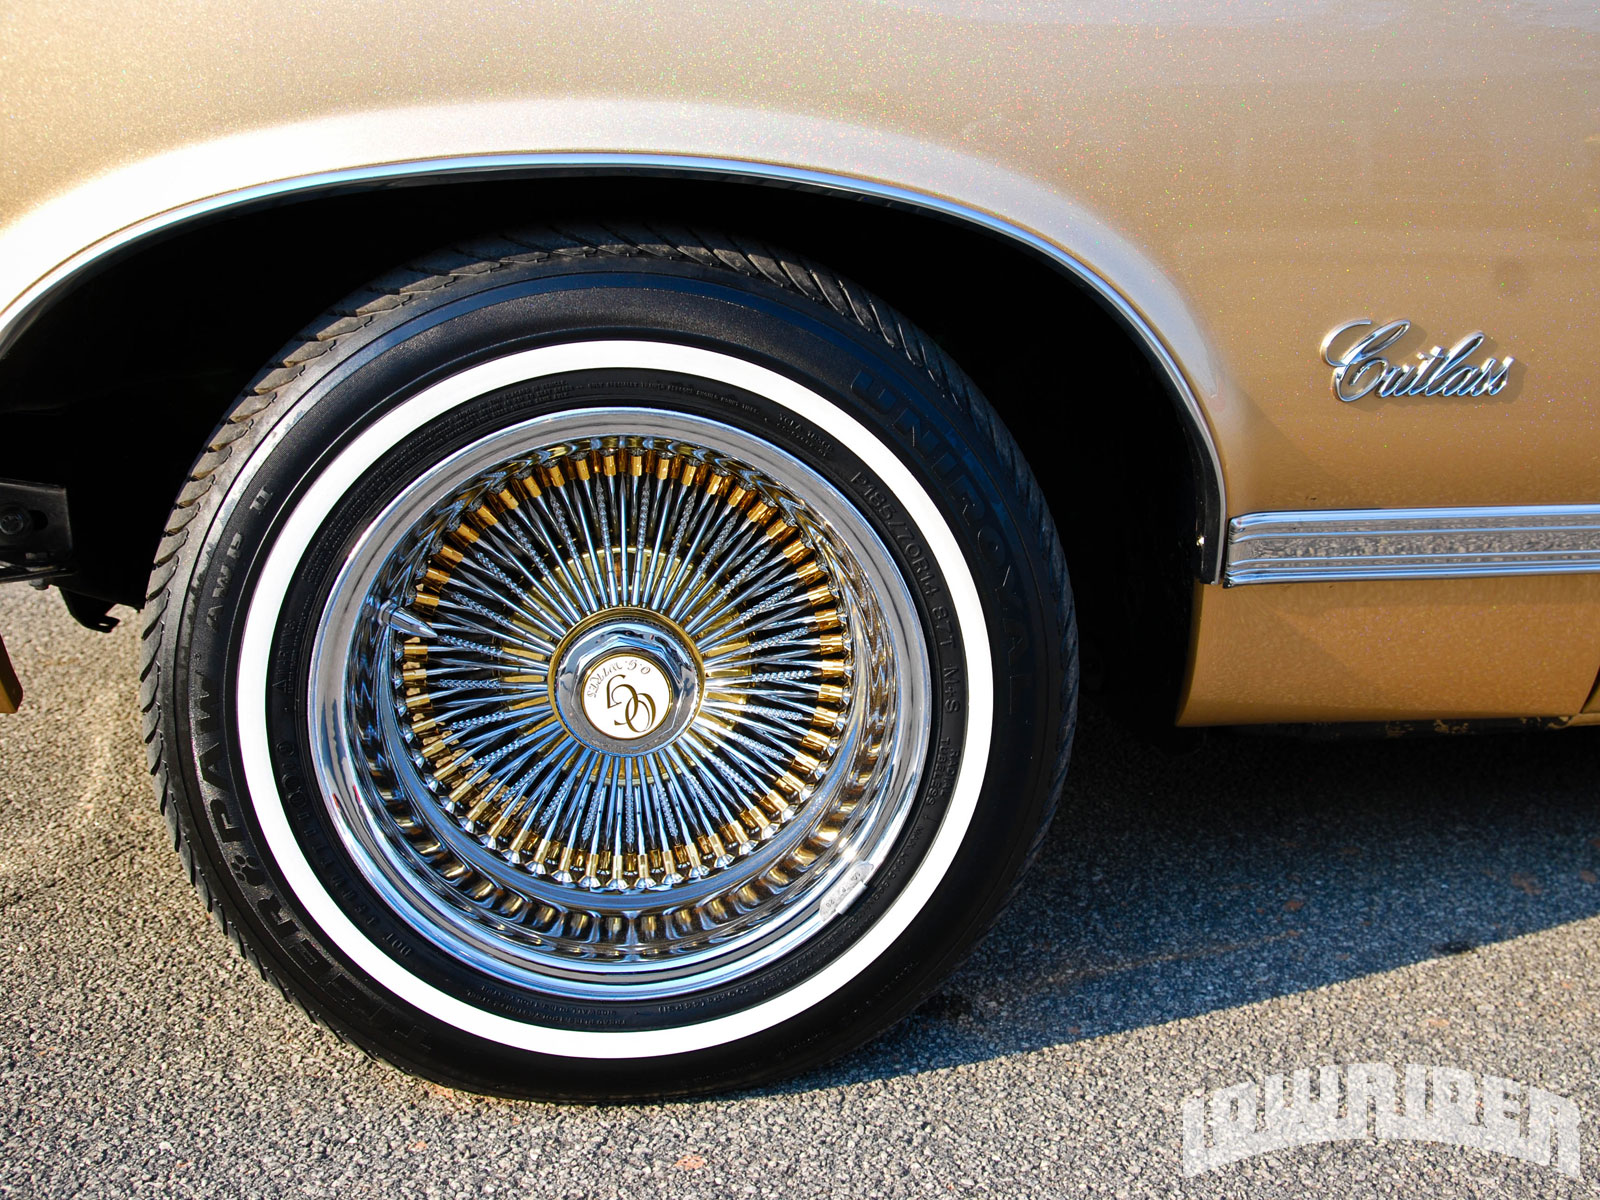 Lowrider Rims And Tires >> 1971 Oldsmobile Cutlass - Lowrider Magazine